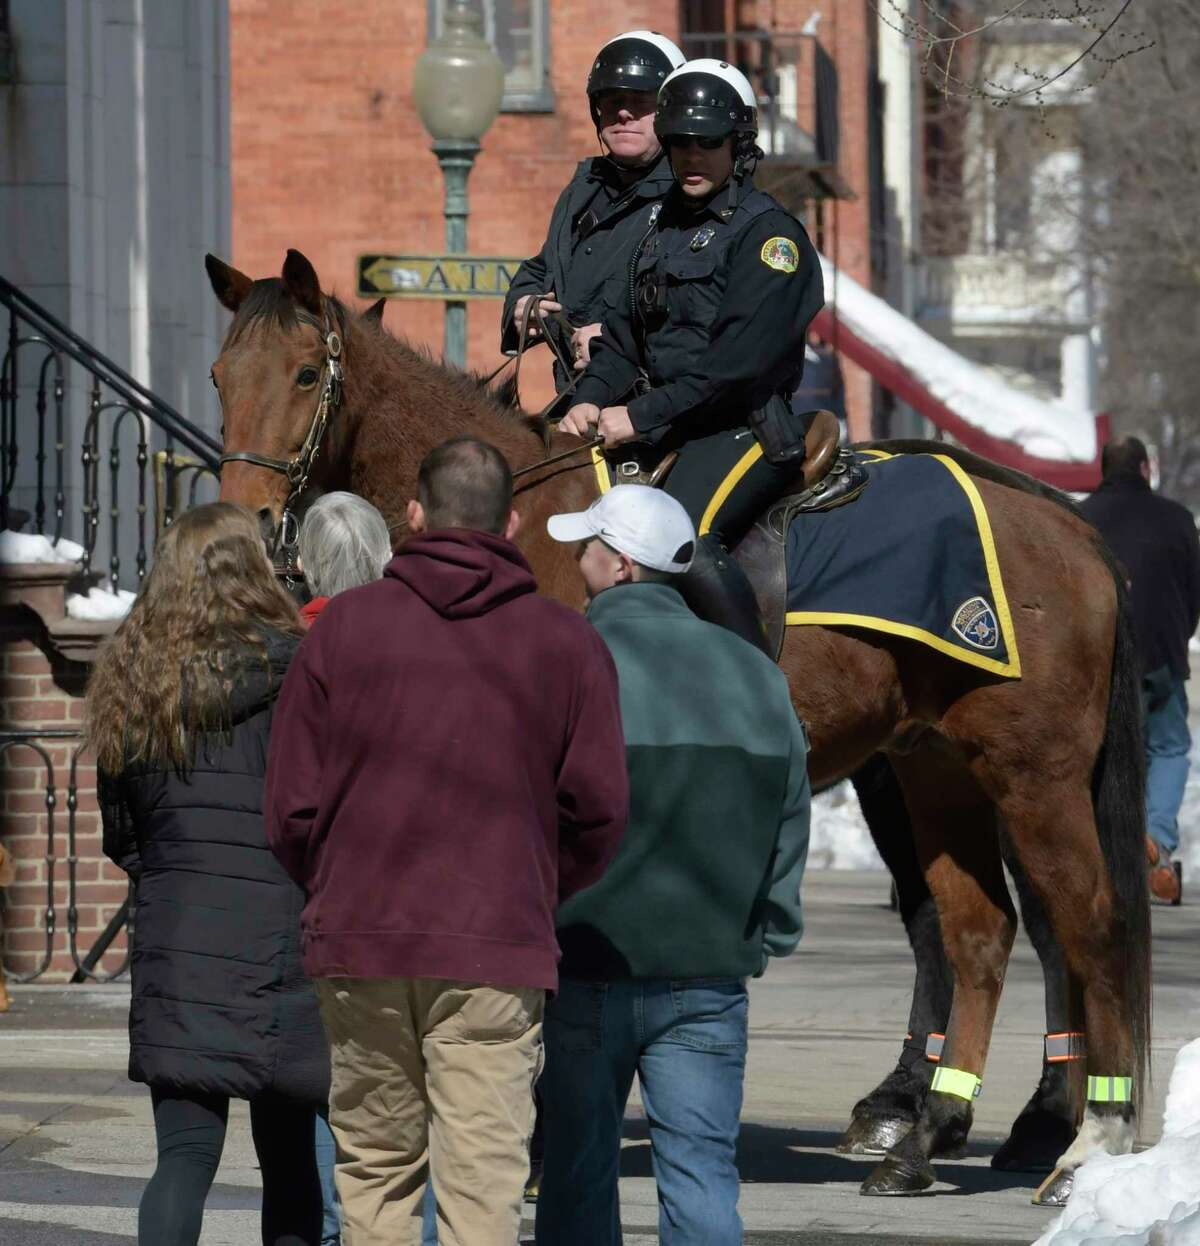 Mounted Officer Jupiter with rider officer Aaron Moore goes out for his final tour of duty on Broadway before retirement Friday March 17, 2017 in Saratoga Springs, N.Y. Accompanying Jupter and Moore is Mounted officer King Tut with rider officer John Sesselman. (Skip Dickstein/Times Union)